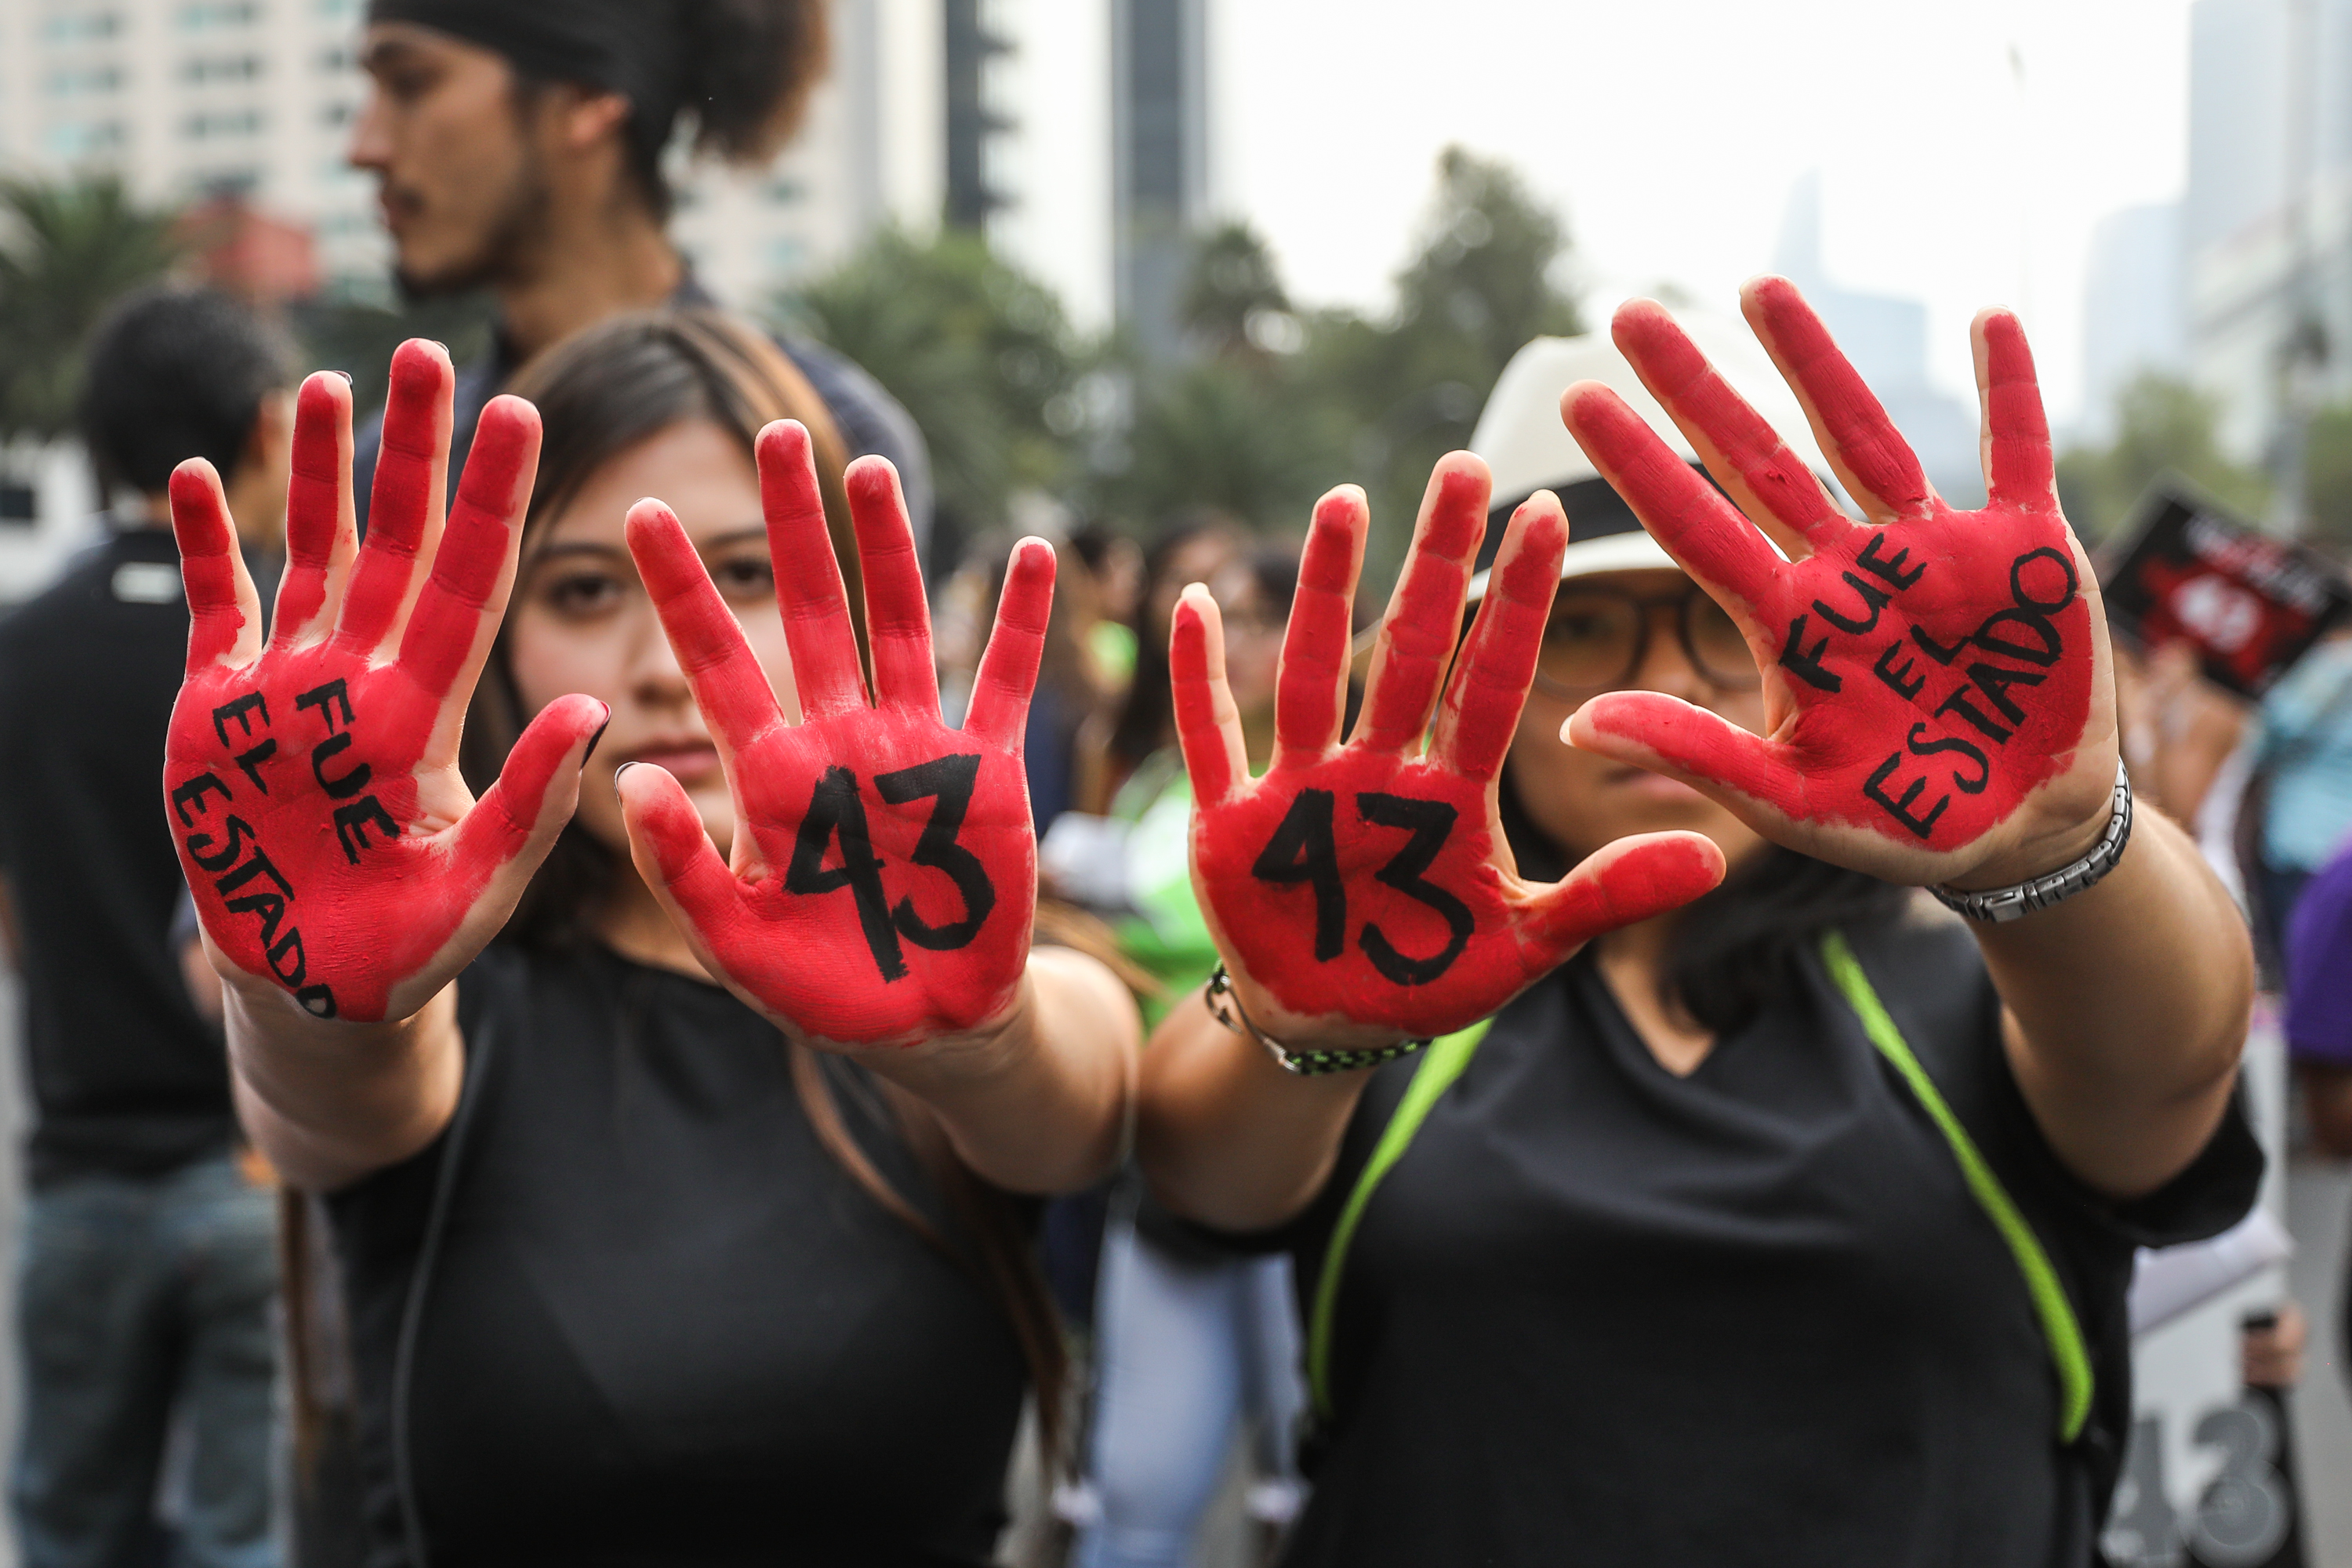 Americas Program: Somber Mexico City March Commemorates Ayotzinapa Anniversary